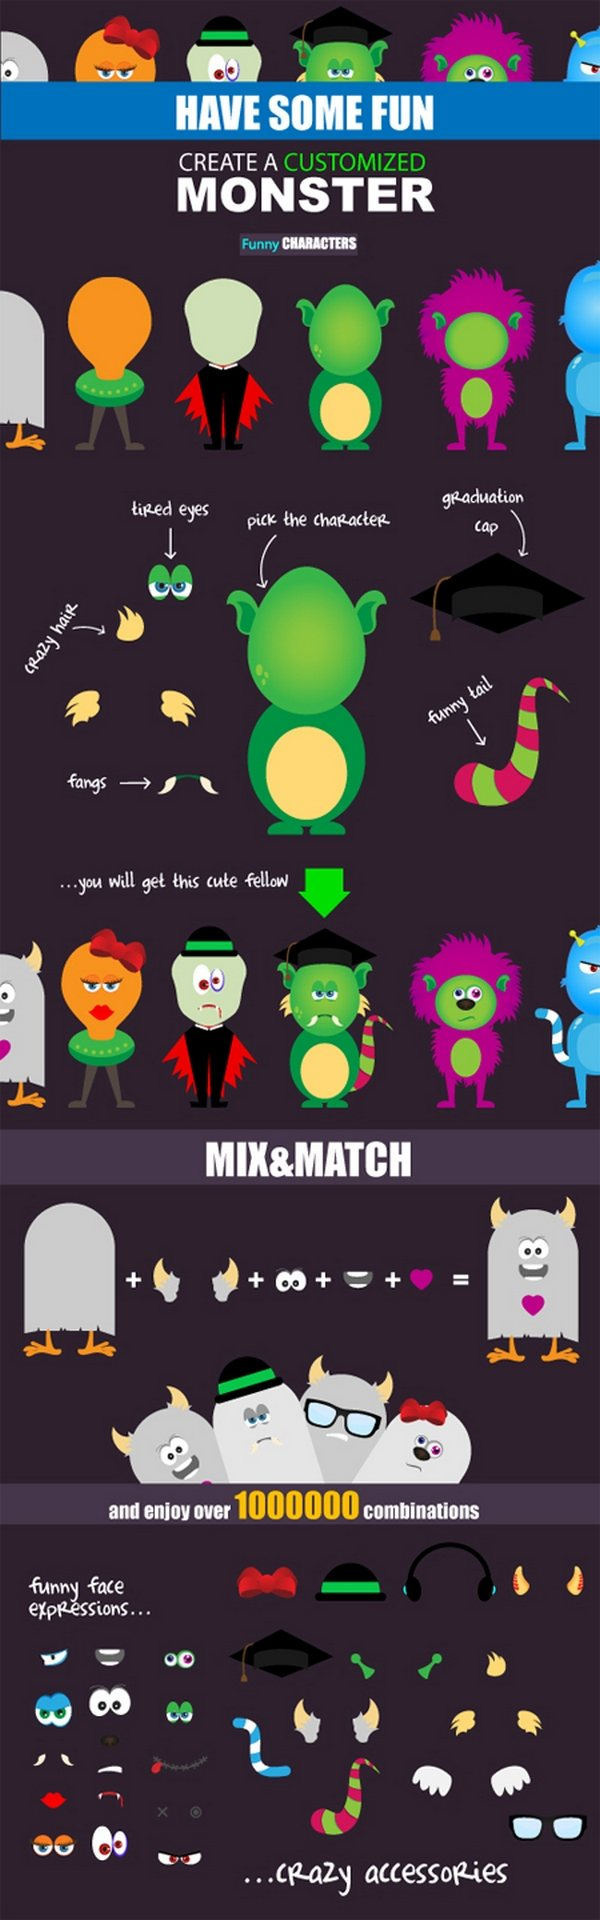 The Funny vector Monsters kit